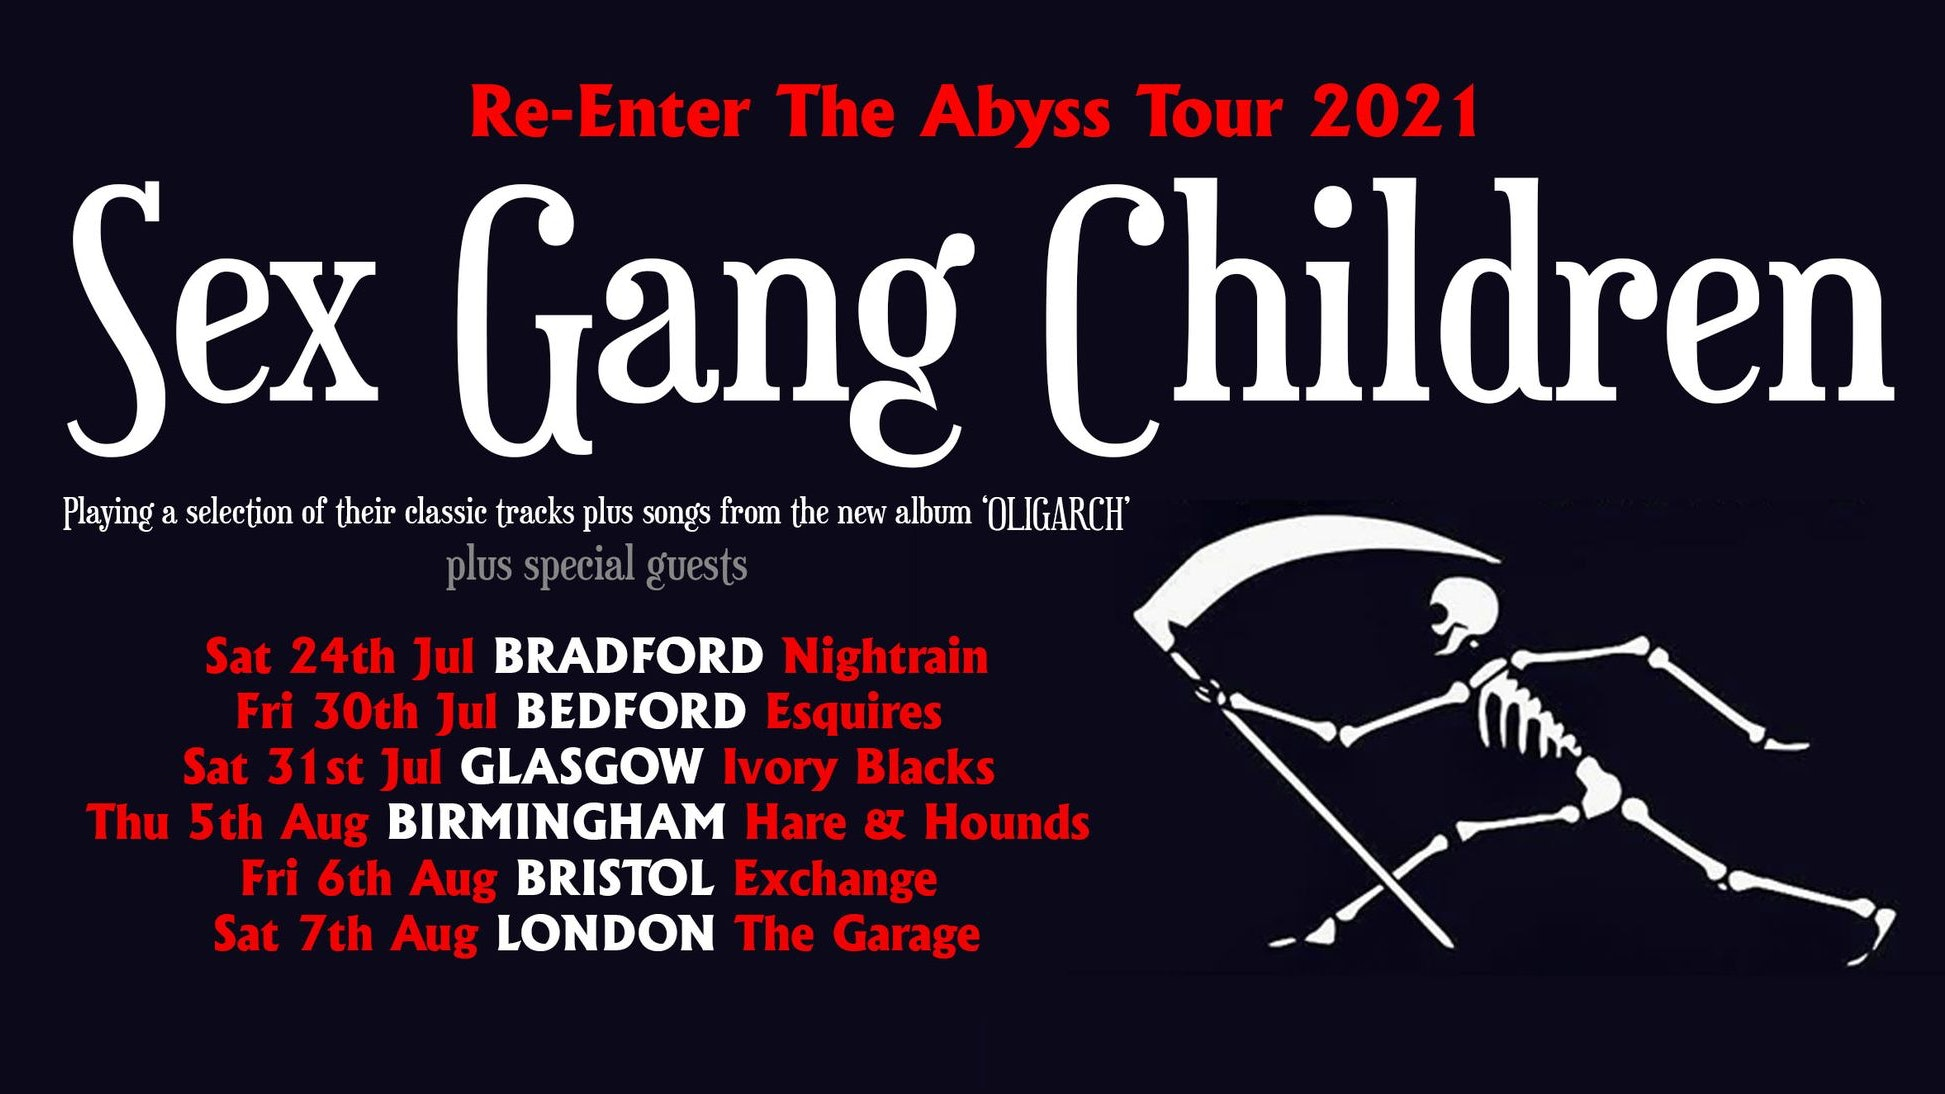 Sex Gang Children Re-Enter The Abyss Tour 2021 – London